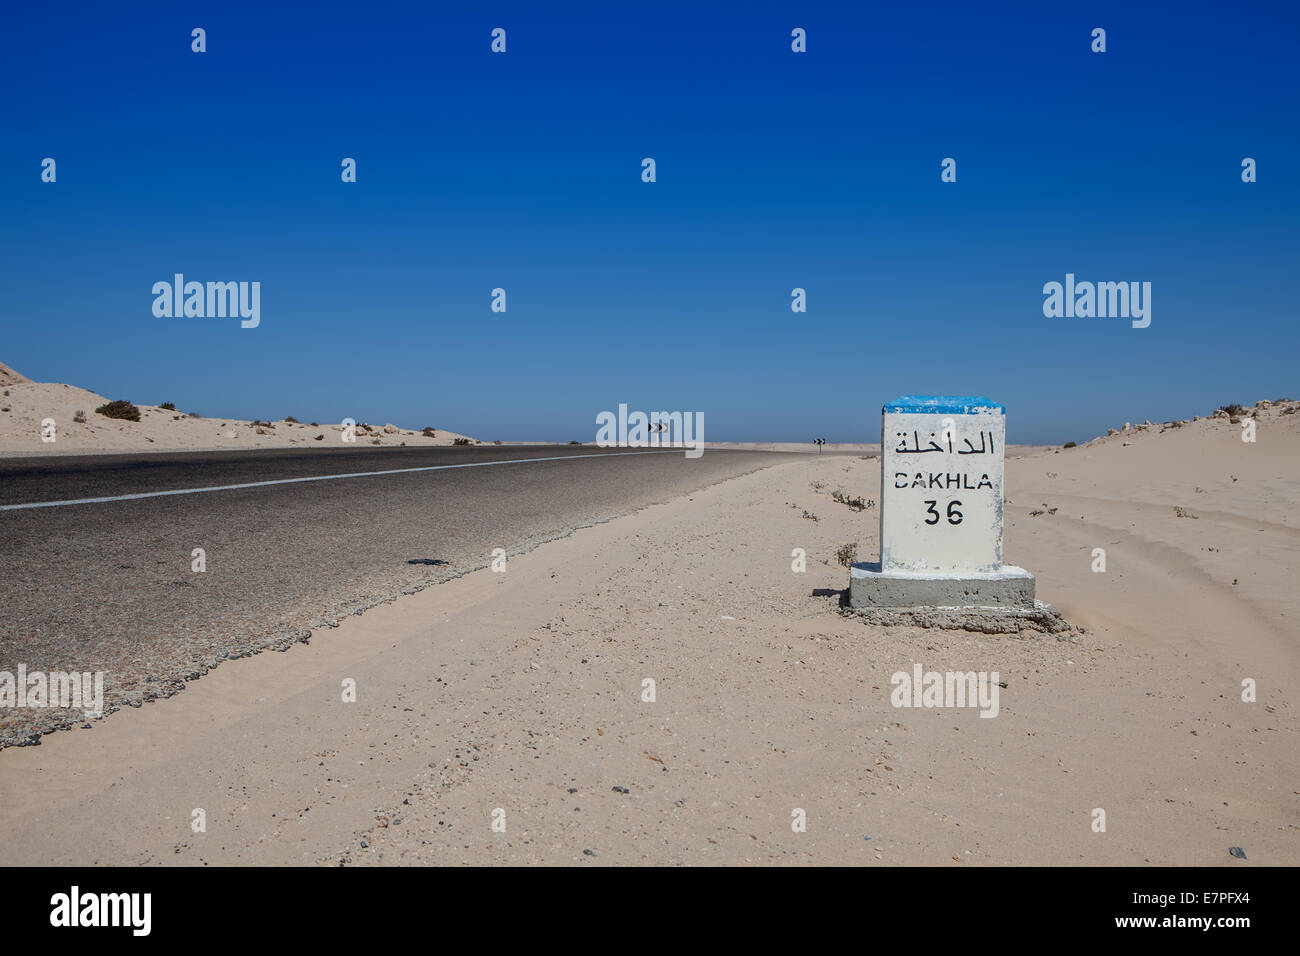 distance signal in a desert road in western sahara morocco - Stock Image